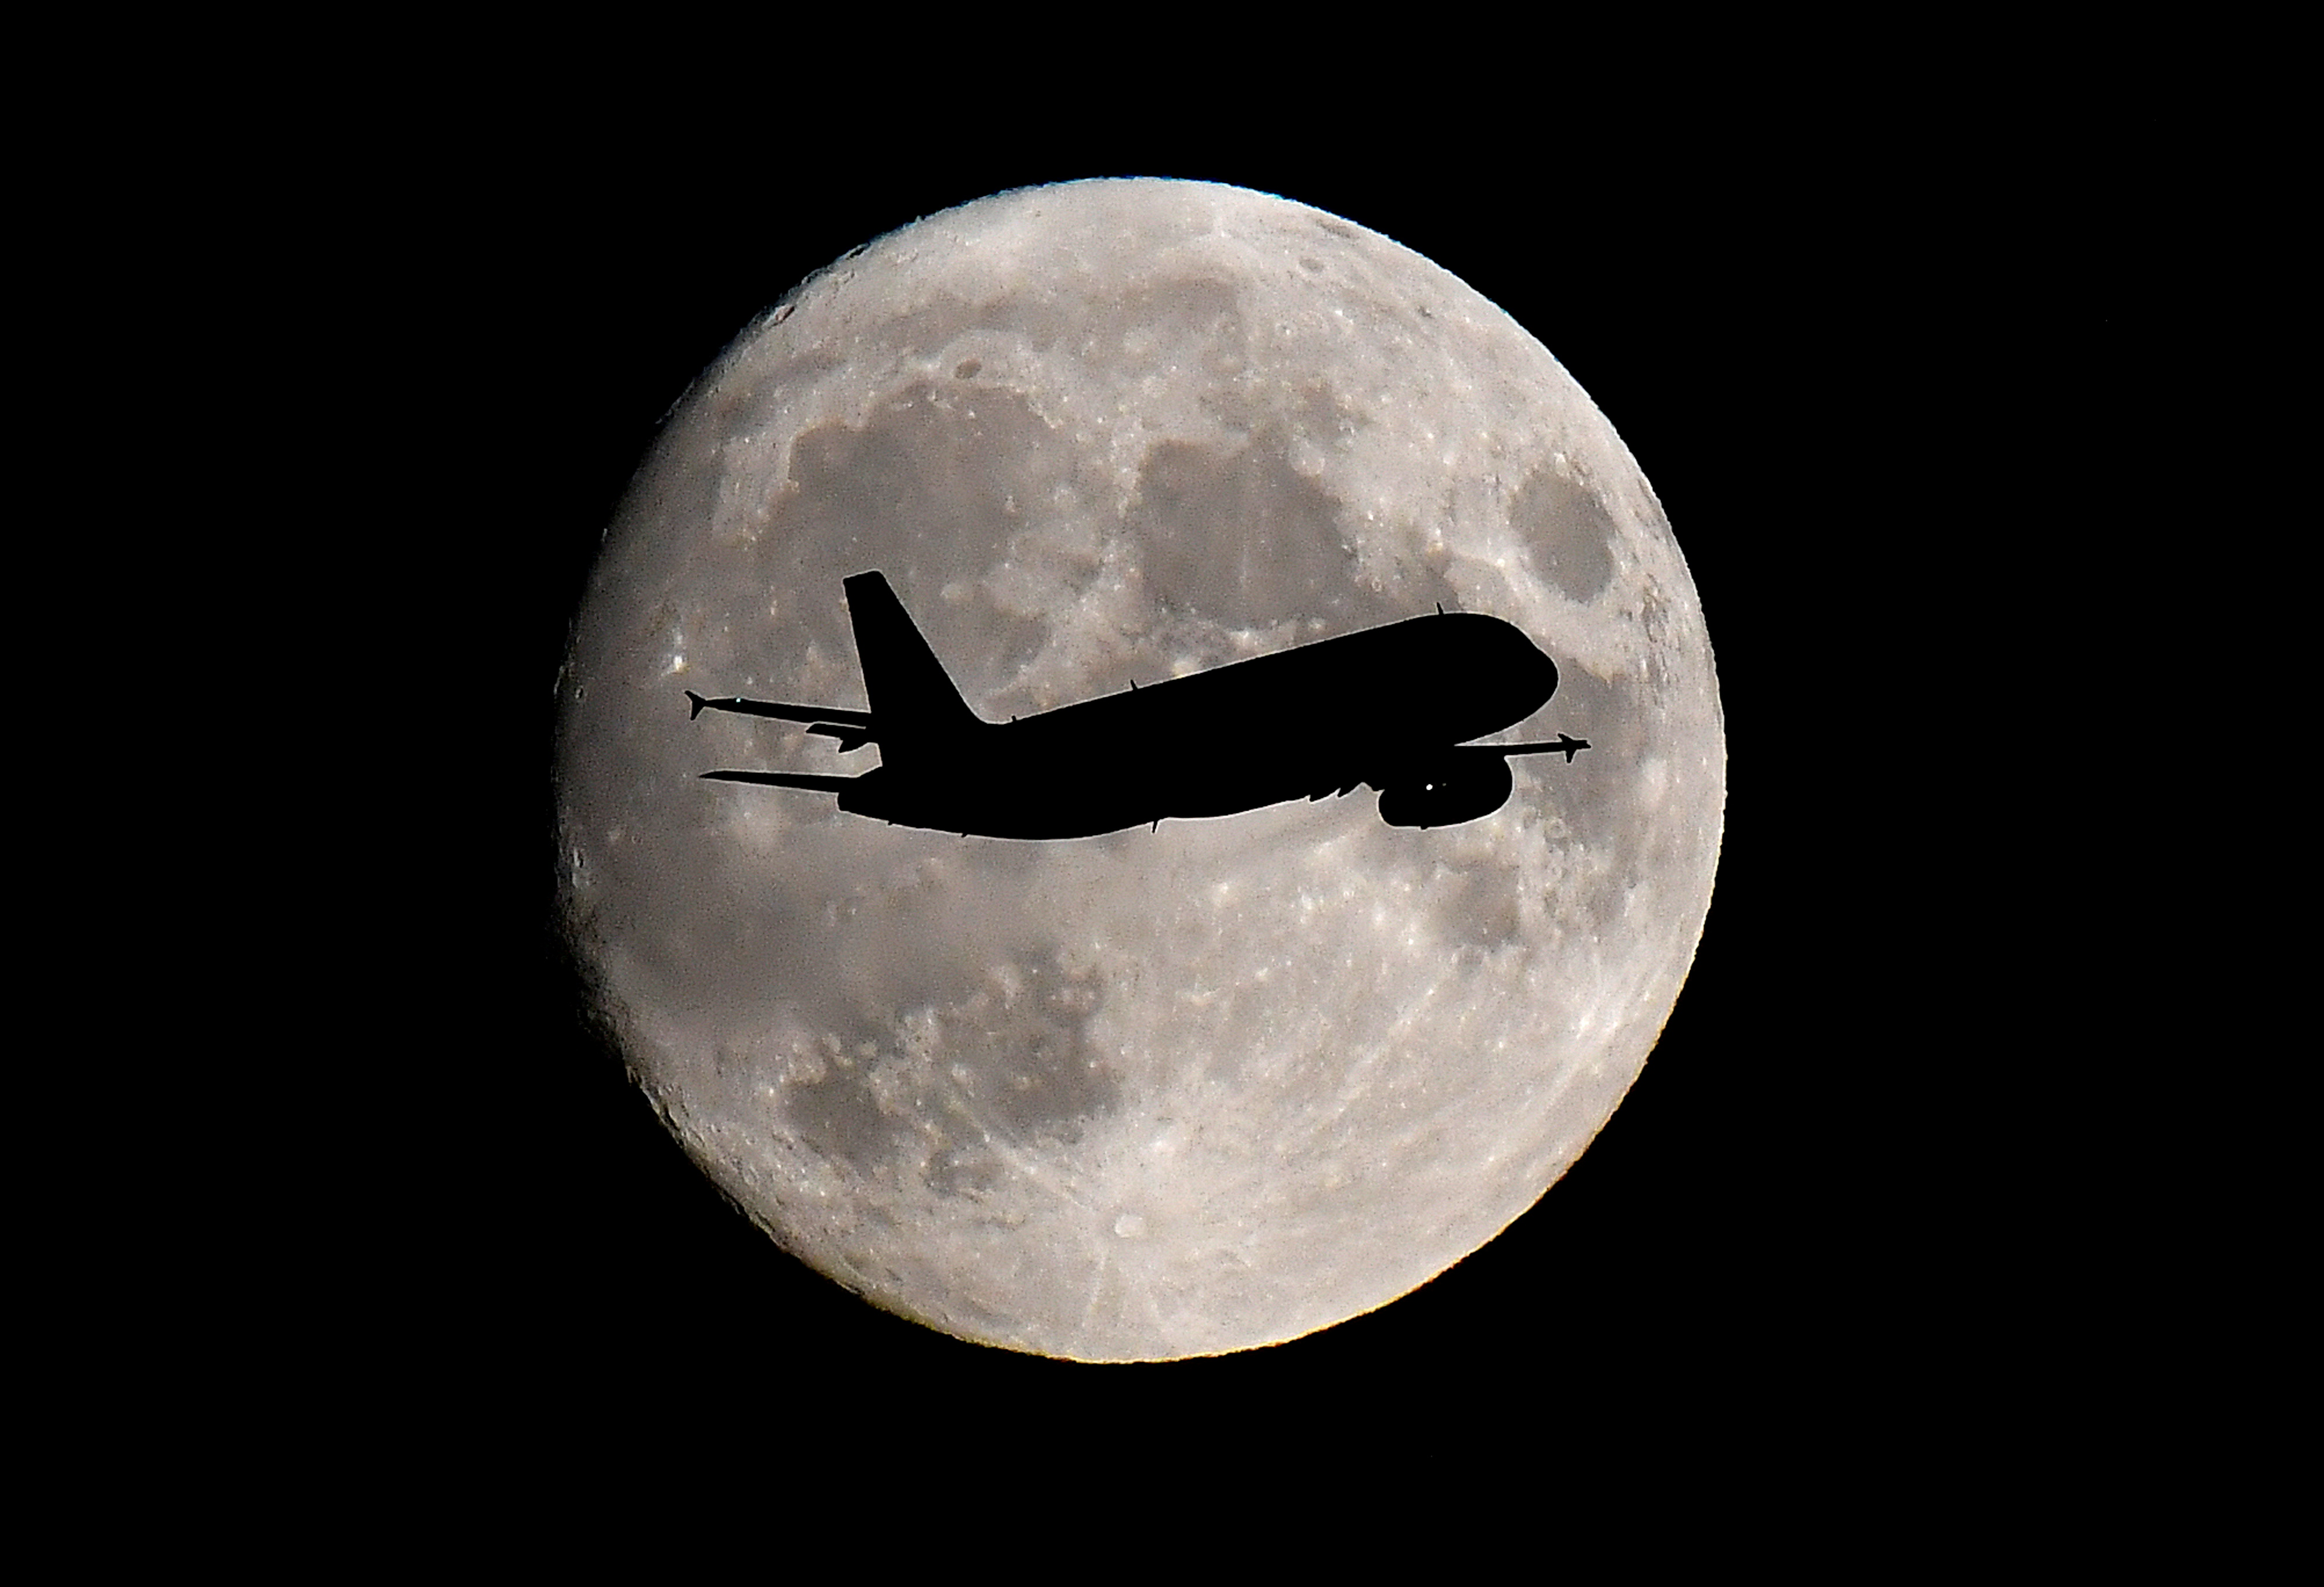 A passenger plane passes in front of the moon as it makes its final landing approach to Heathrow Airport in London, Britain September 12, 2019. REUTERS/Toby Melville